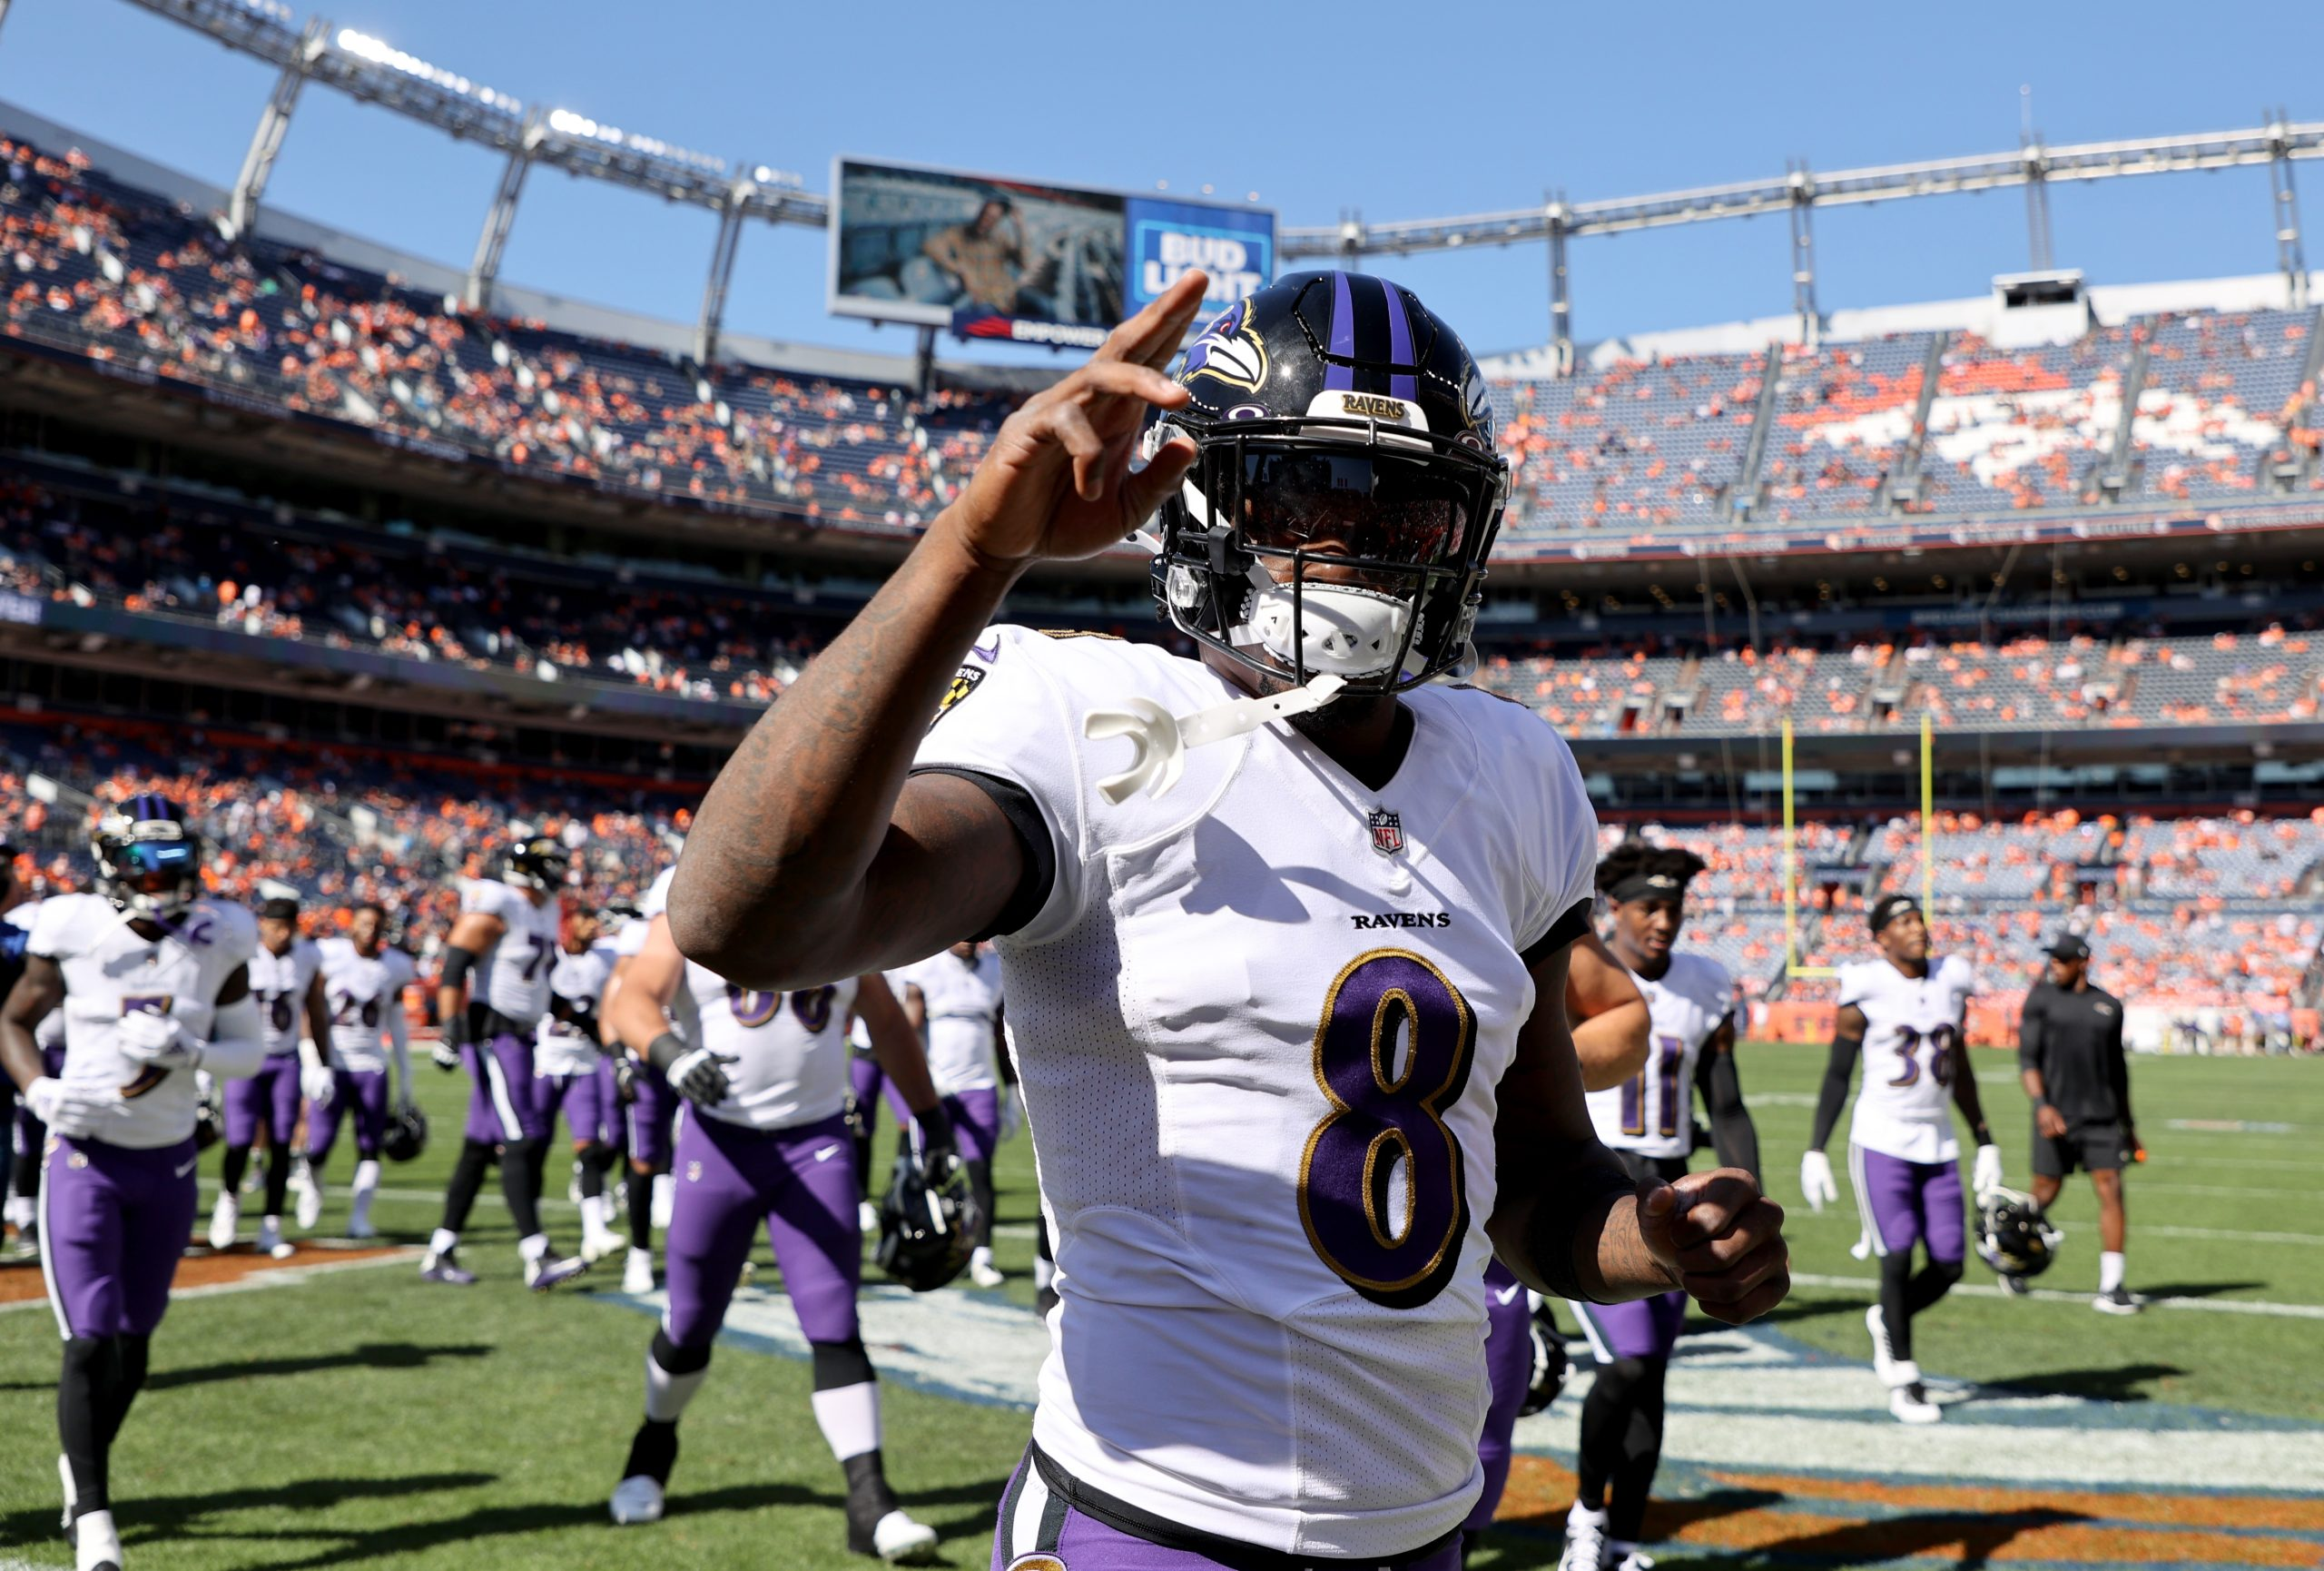 Nickel Coverage: The Consistently Inconsistent Ravens are Emerging as an AFC Threat